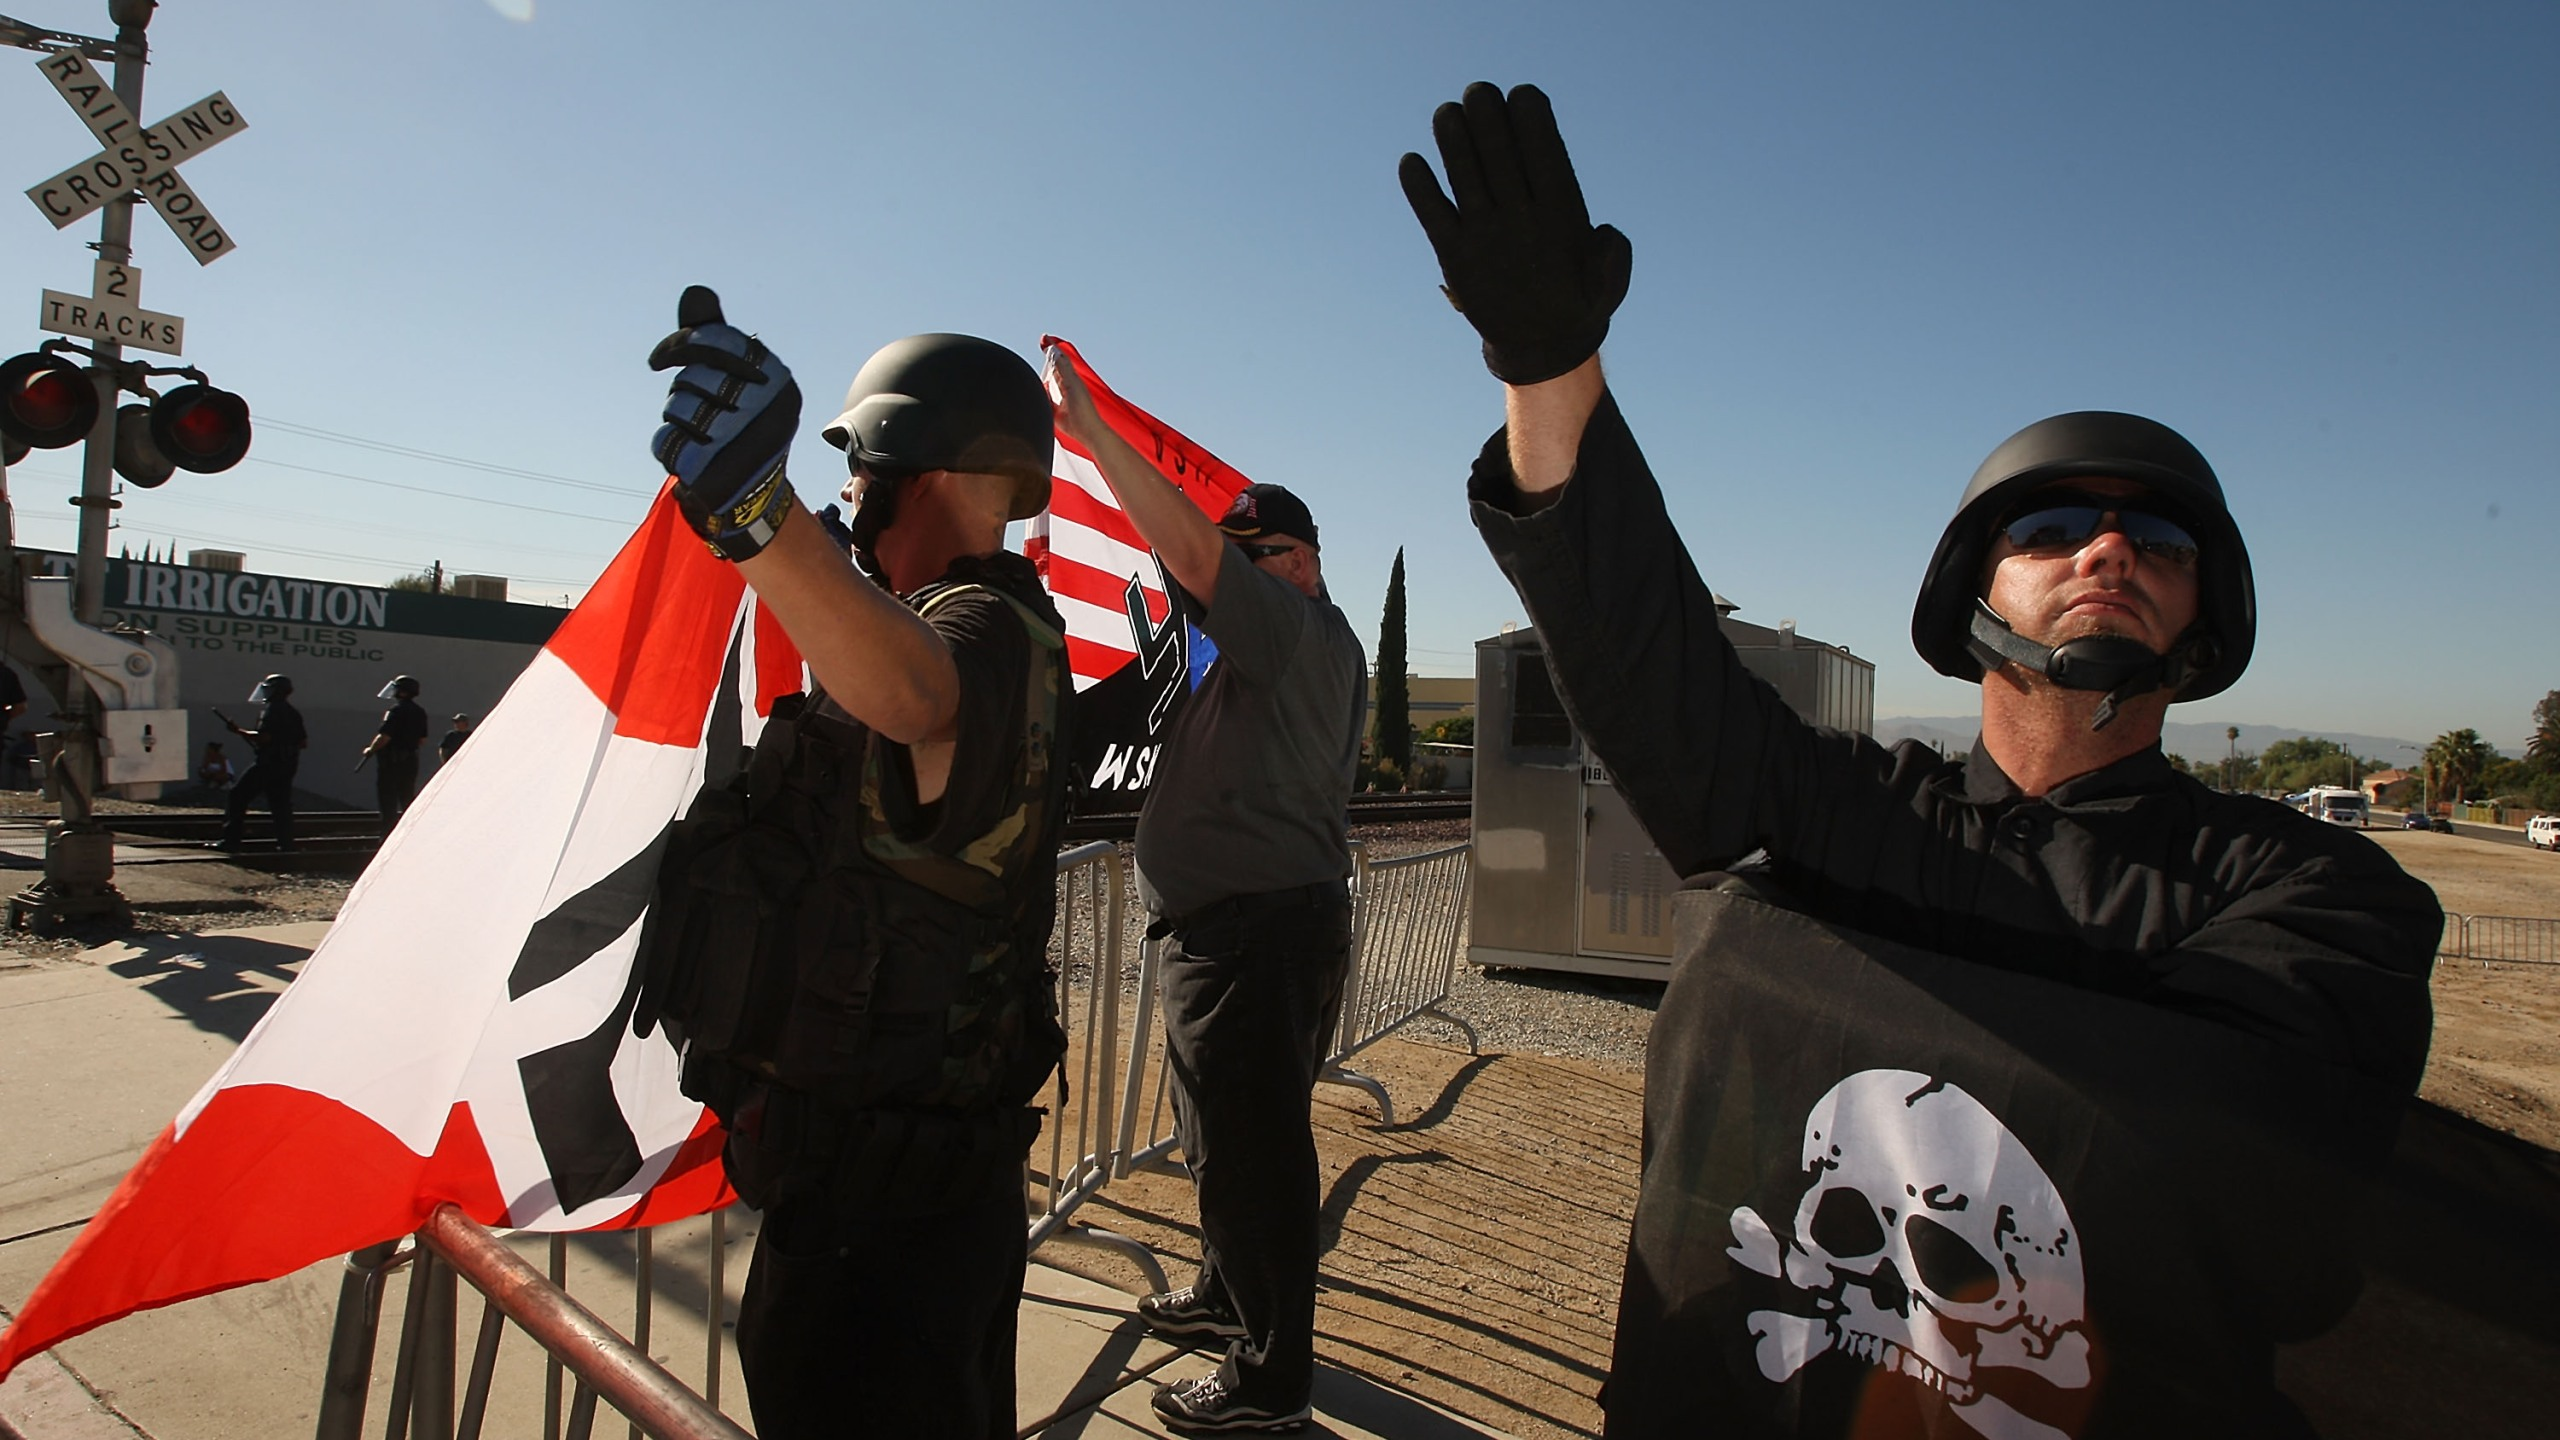 Members of the white supremacist group, the National Socialist Movement, hold swastika flags and salute at the NSMÕs anti-illegal immigration rally near a Home Depot store on October 24, 2009 in Riverside, California. (David McNew/Getty Images)Members of the white supremacist group, the National Socialist Movement, hold swastika flags and salute at the NSMÕs anti-illegal immigration rally near a Home Depot store on October 24, 2009 in Riverside, California. (David McNew/Getty Images)